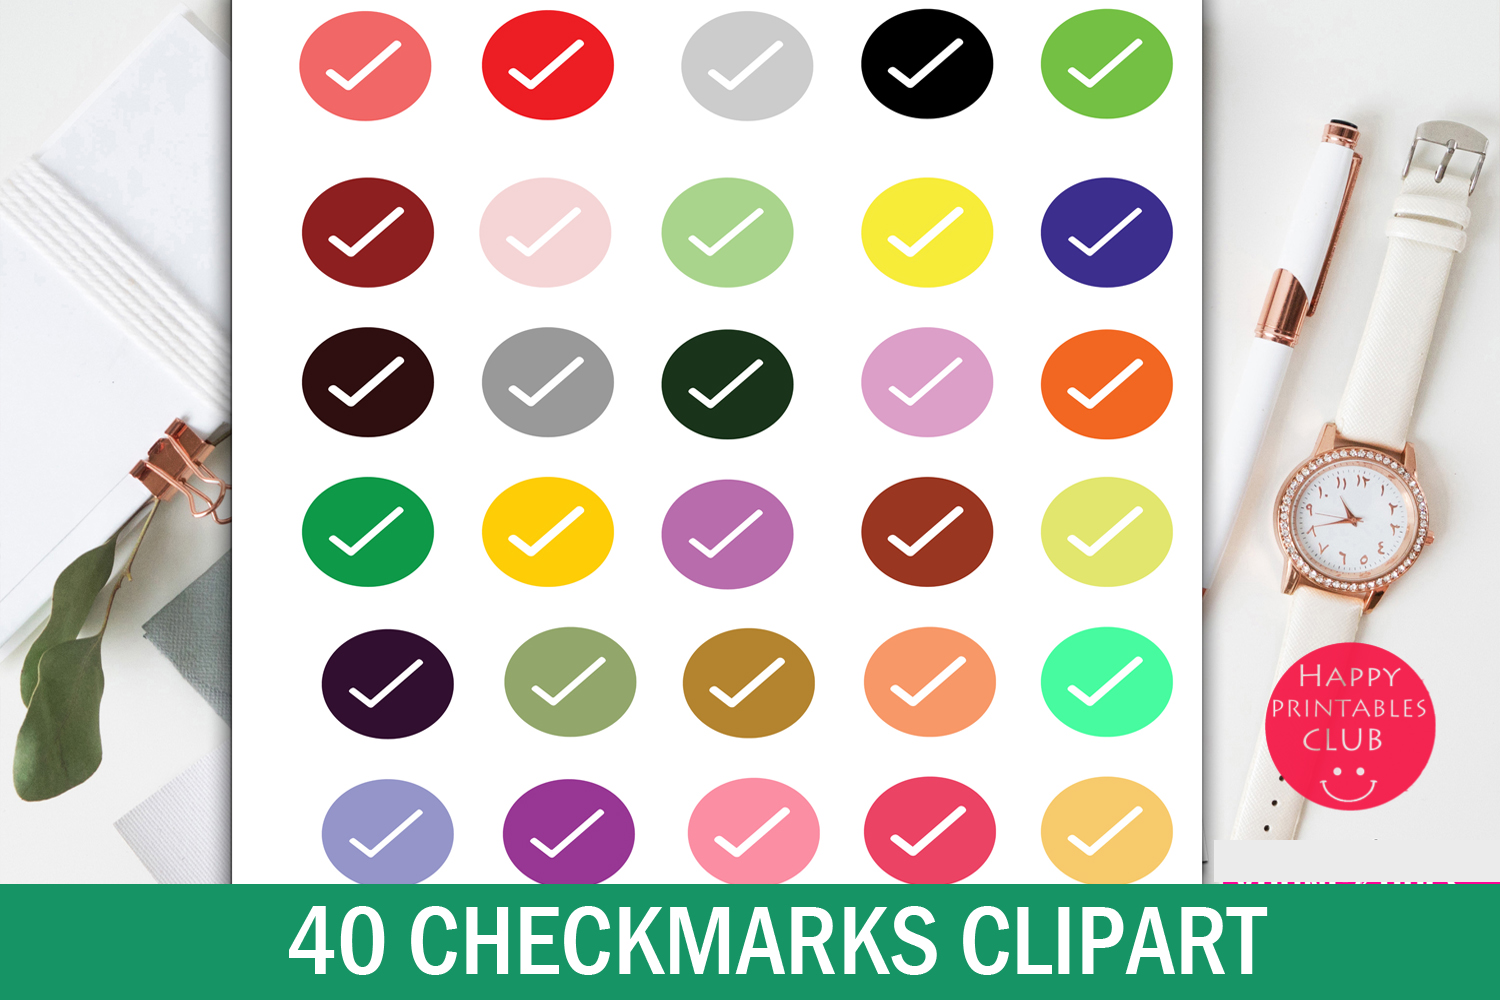 40 CheckMarks Clipart-Checkmark Icons-School Stickers example image 1